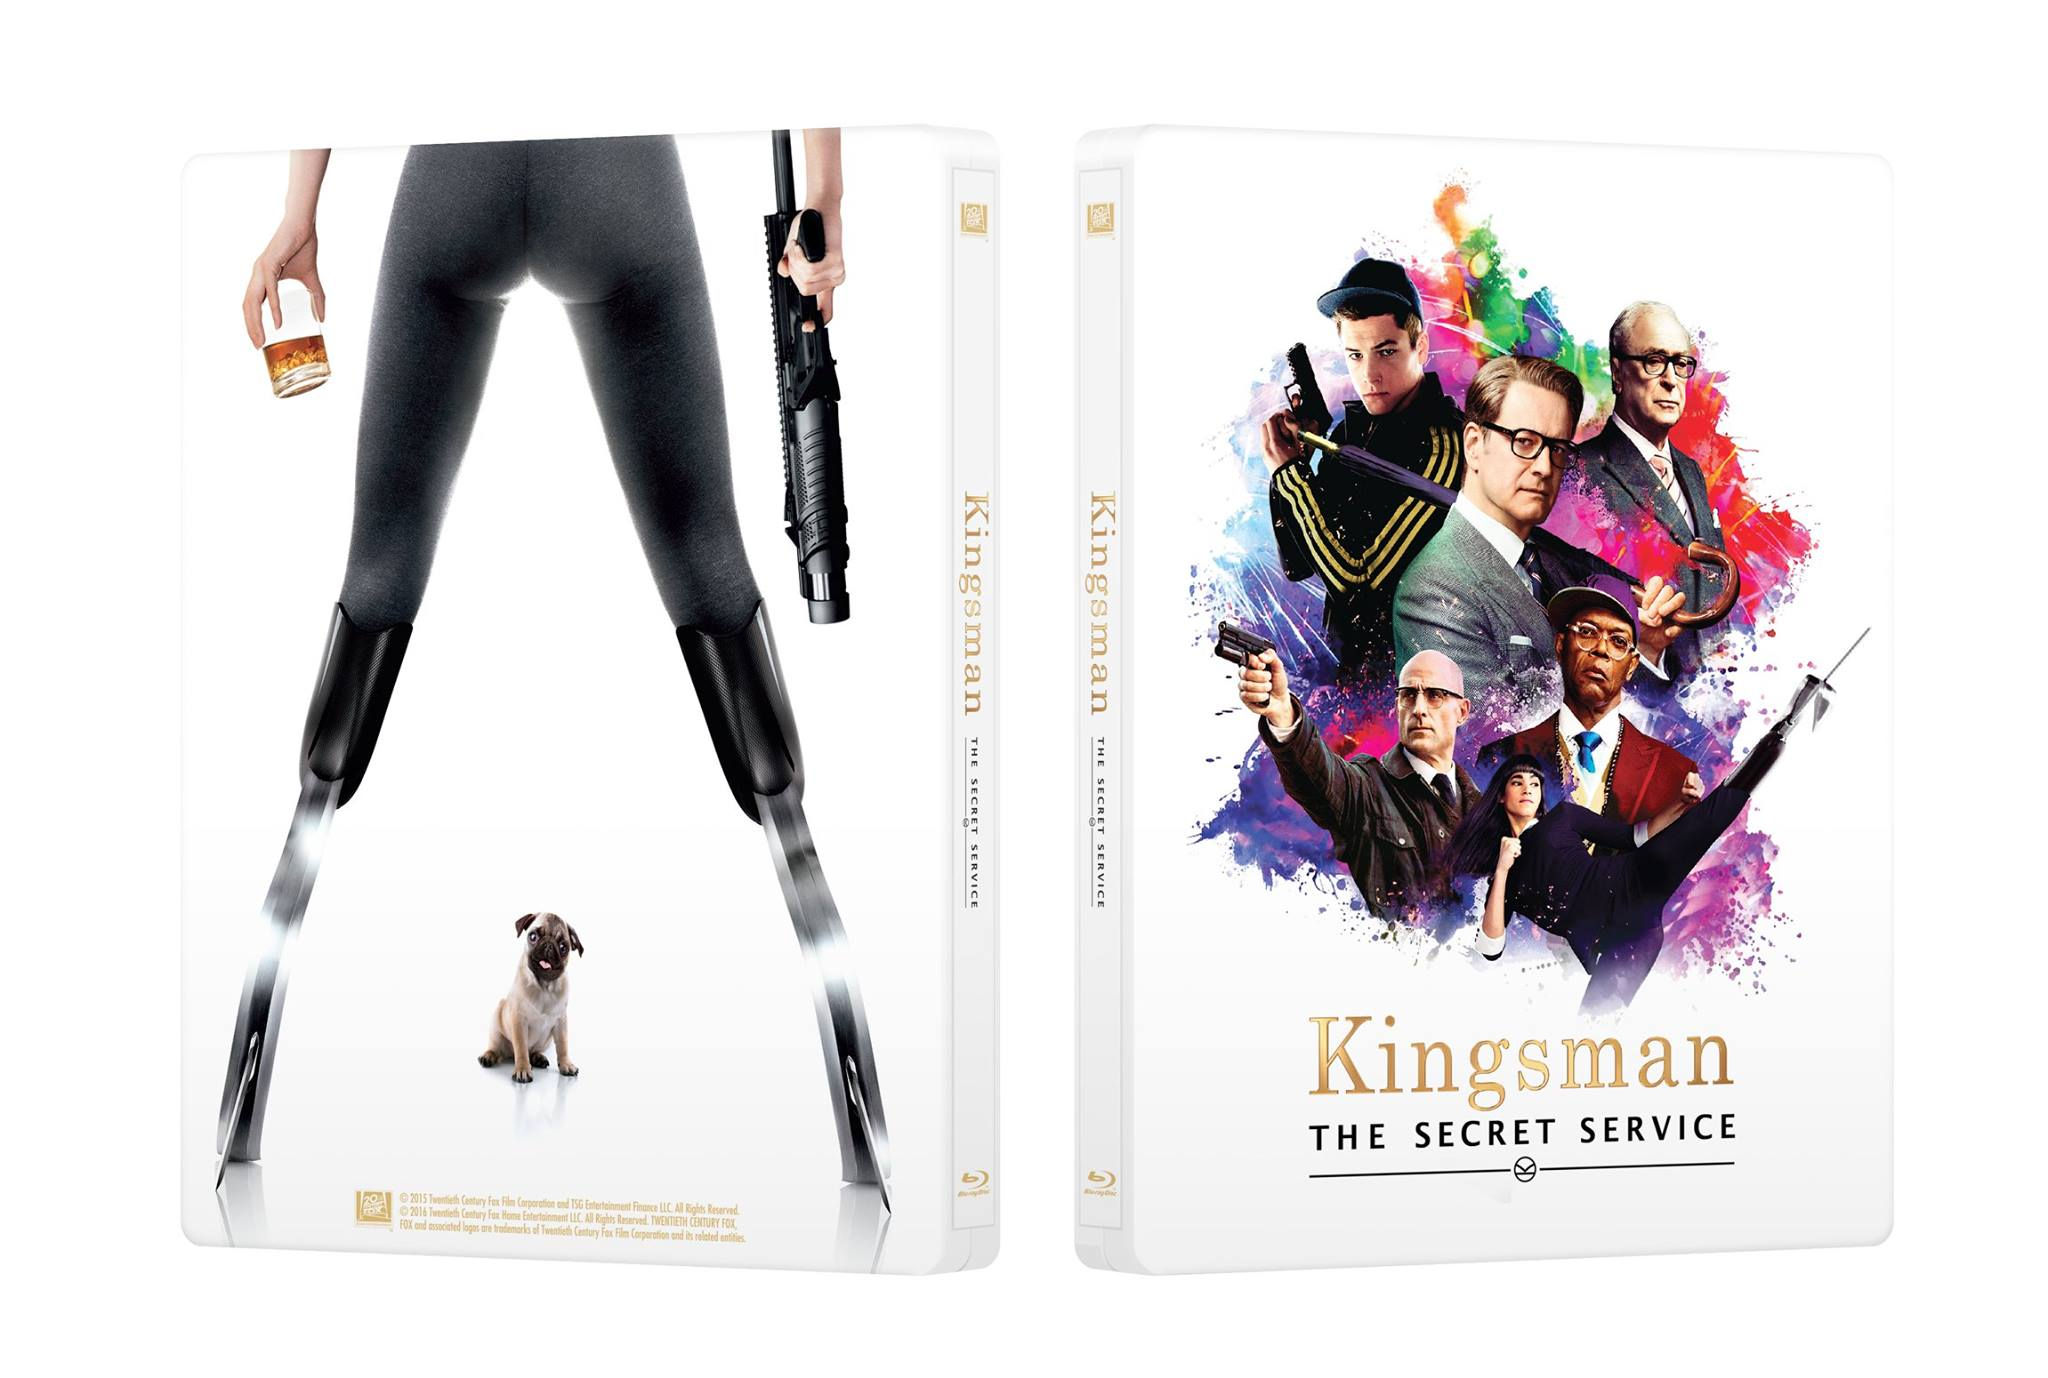 kingsman-steelbook-mantalab